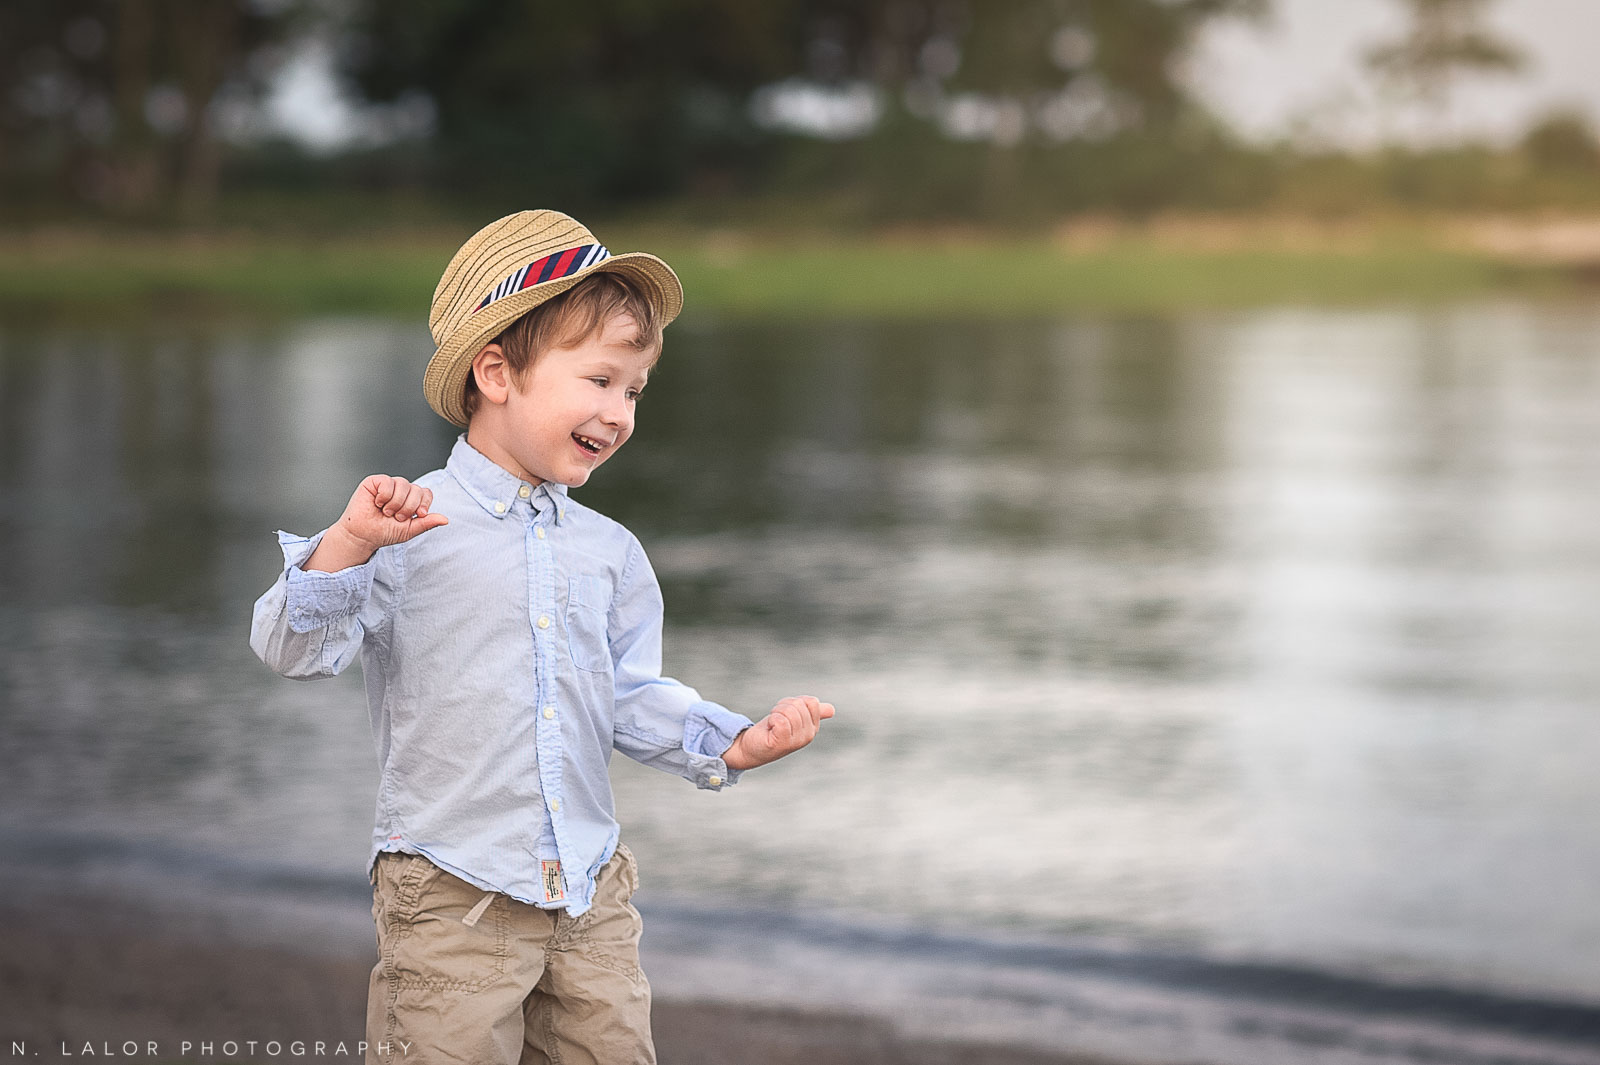 nlalor-photography-063014-styled-boy-beach-session-stamford-ct-1.jpg